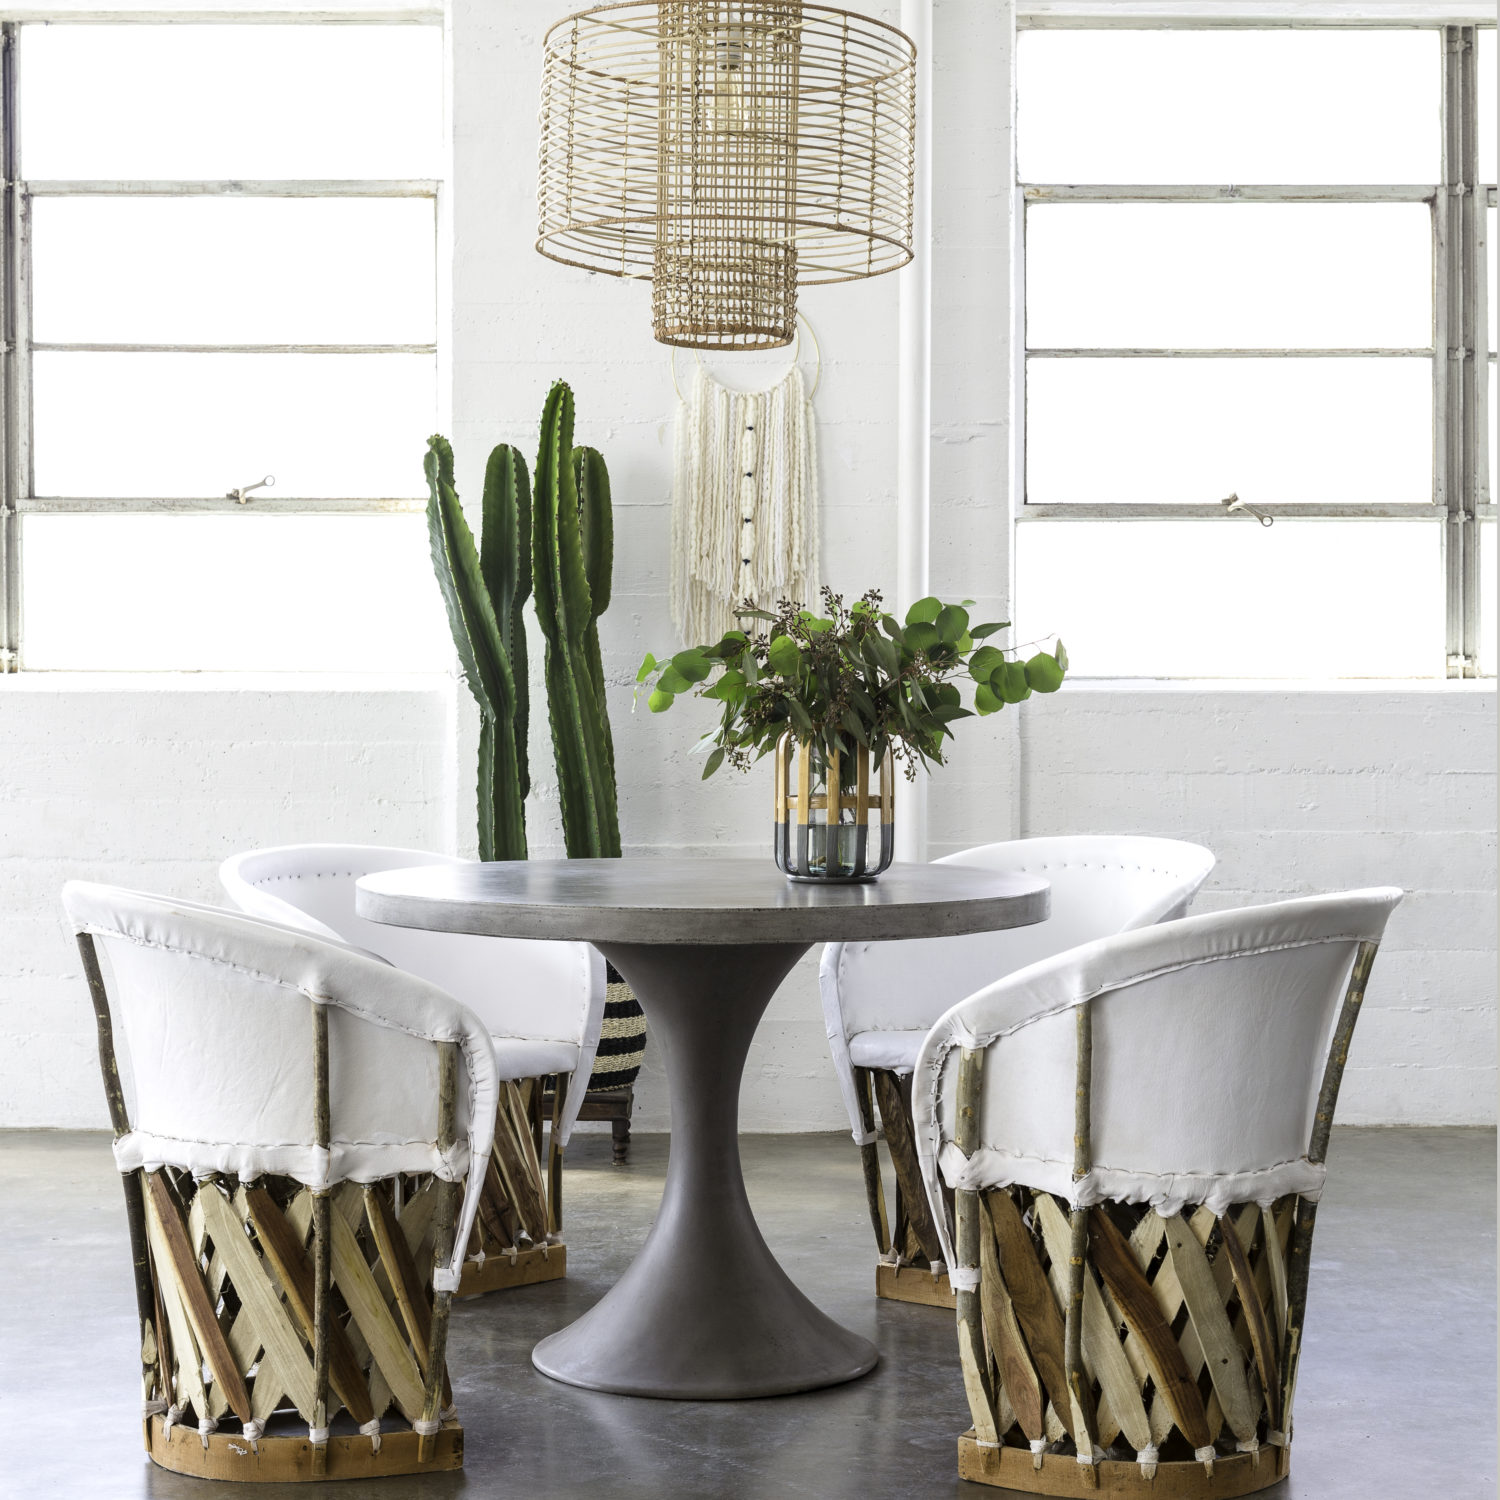 Eclectic Goods Sonoran Chairs